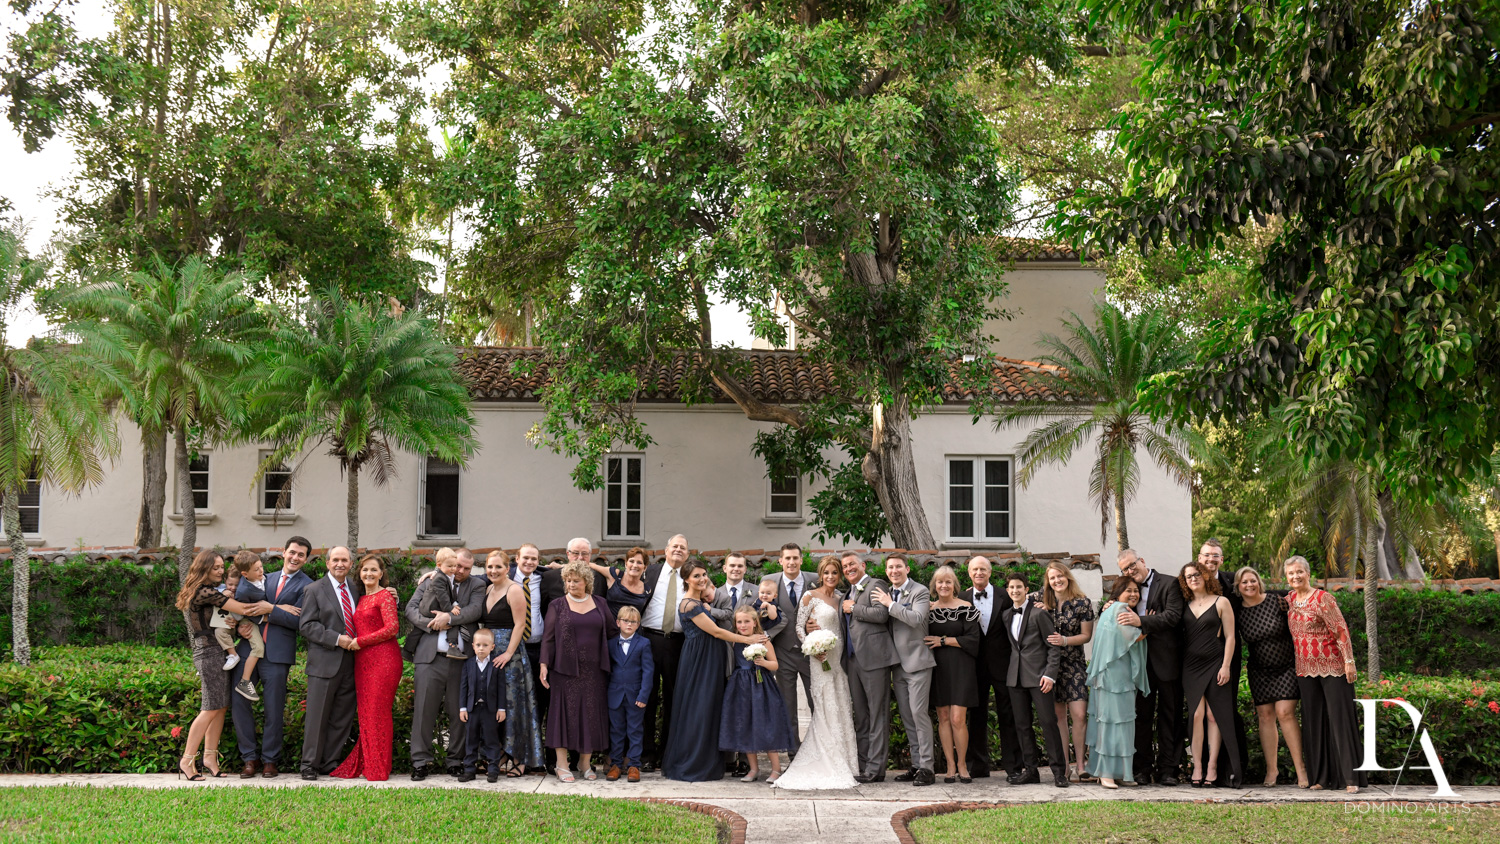 family photography at Classic & Elegant Wedding Photography at Fisher Island Miami by Domino Arts Photography